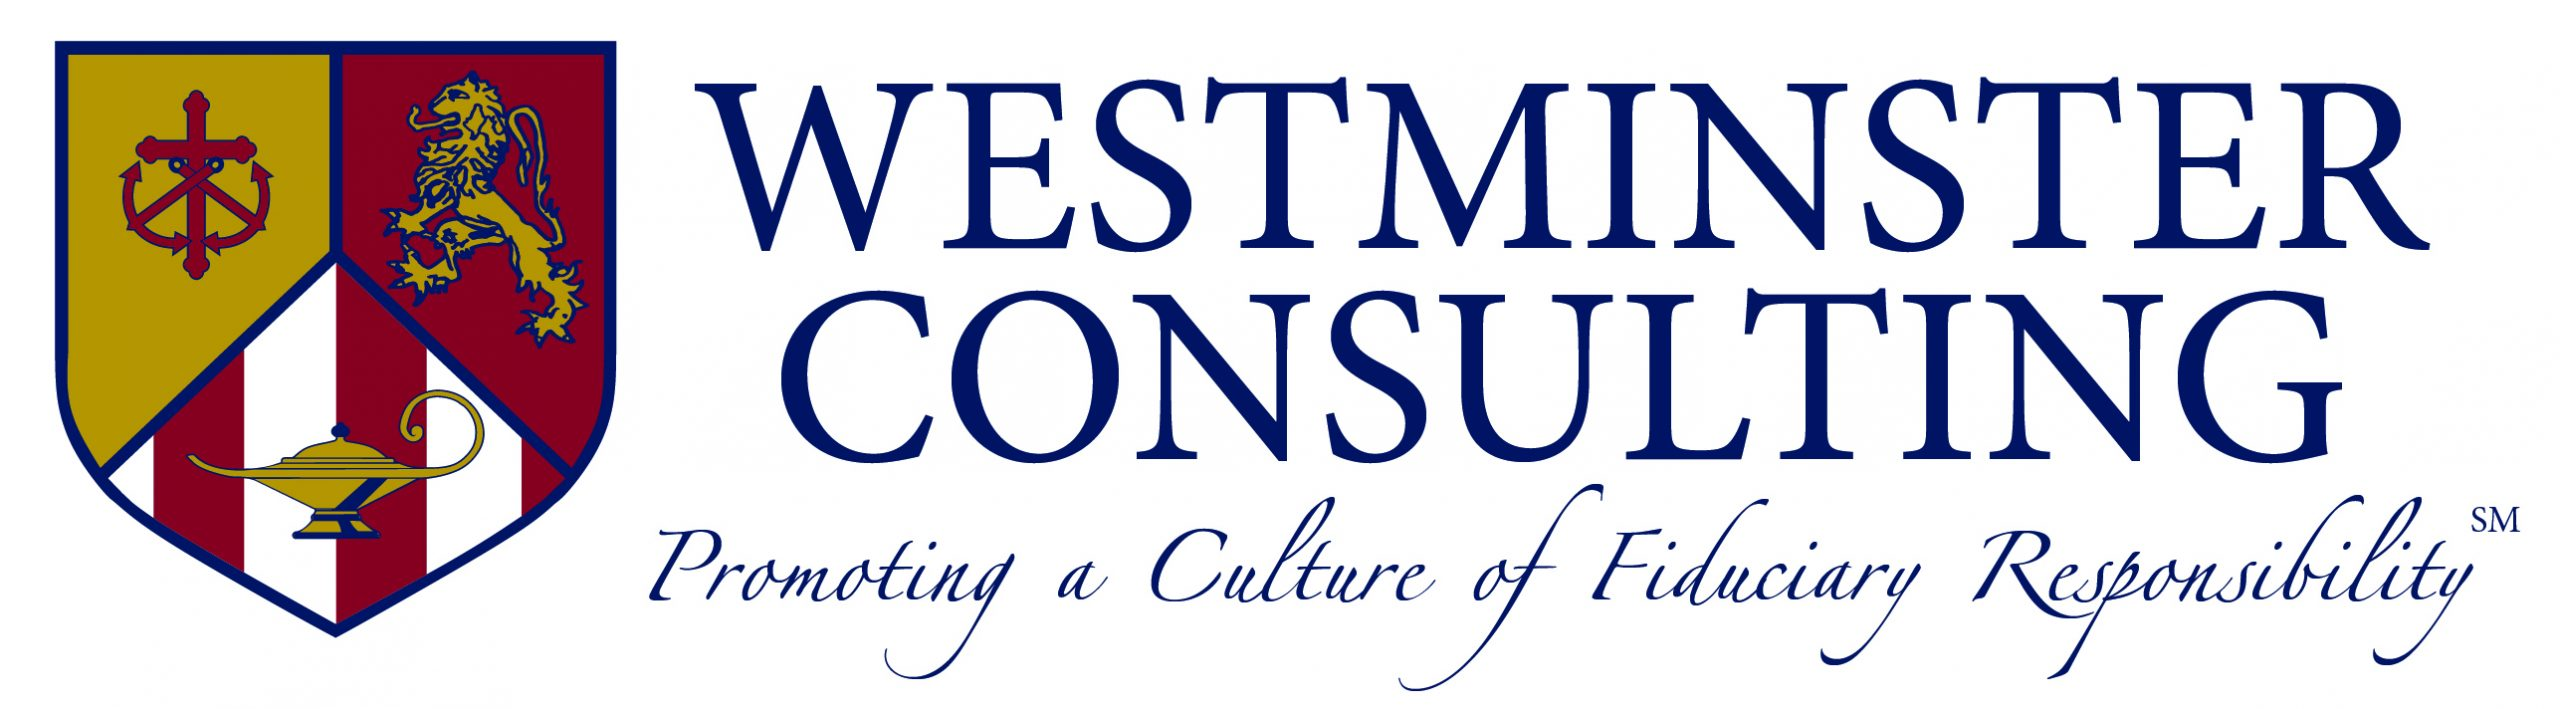 WestminsterLogo HR.jpg 1 scaled - Our Community in This Moment